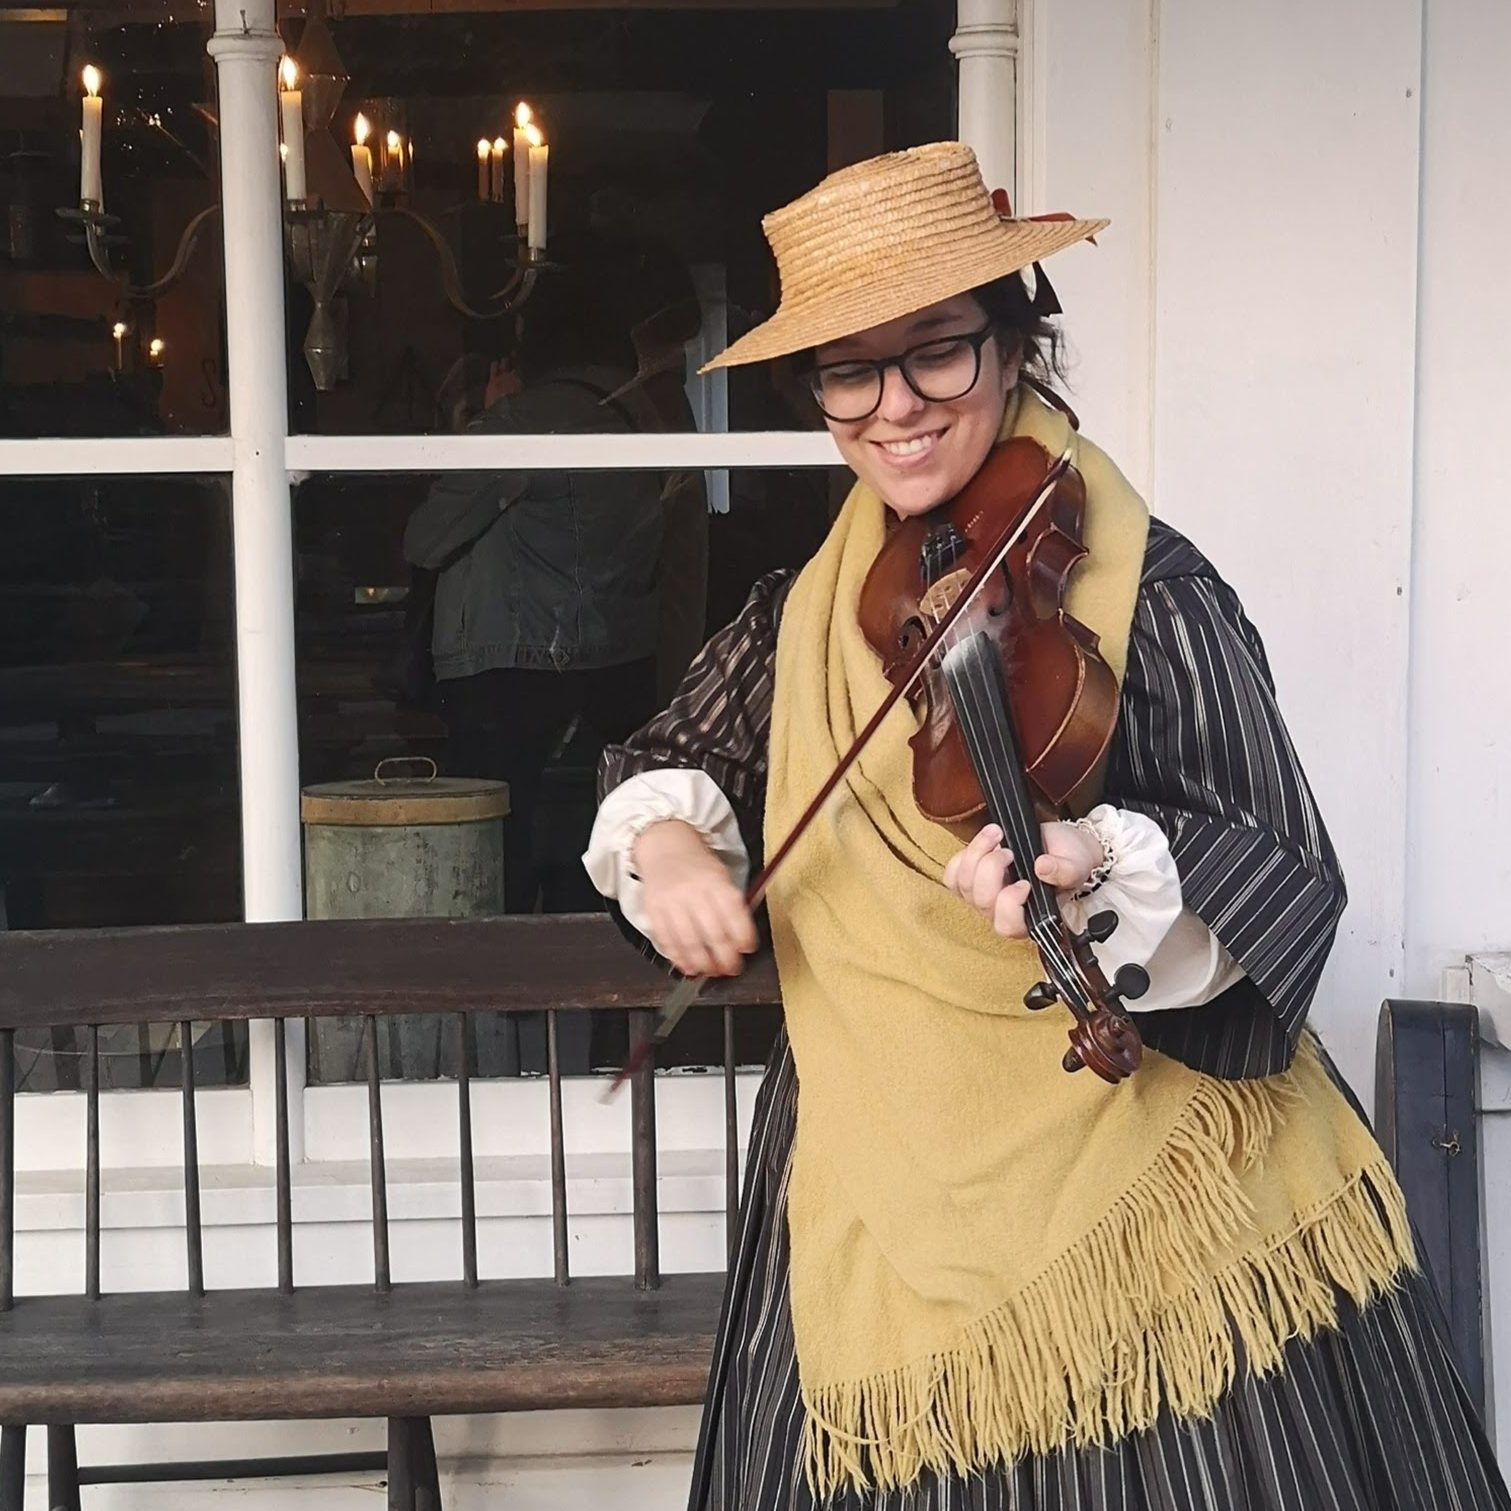 A pioneer woman playing the fiddle